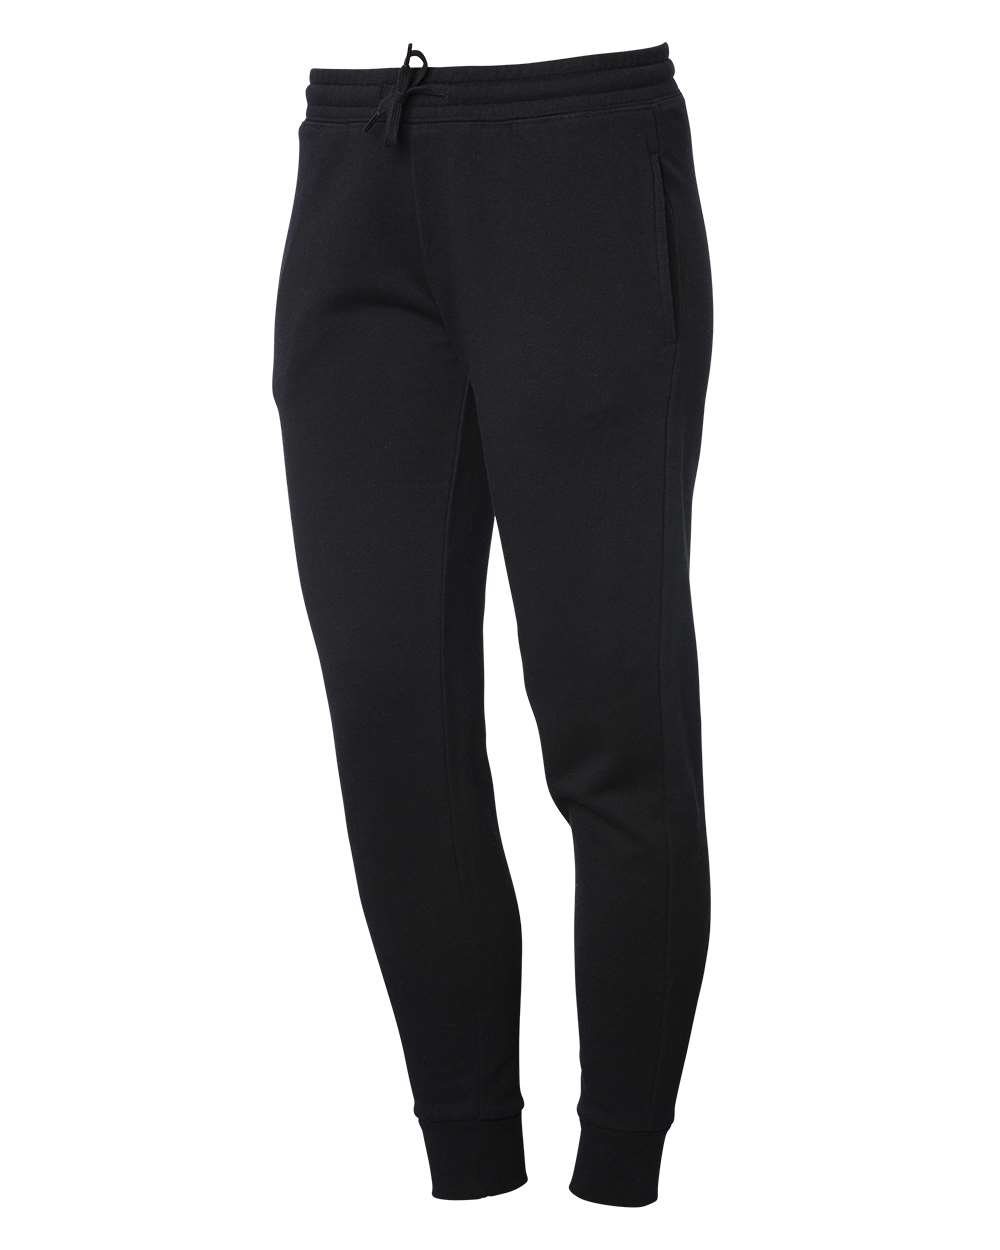 Independent Trading Co. PRM20PNT - Women's California Wave Wash Sweatpants